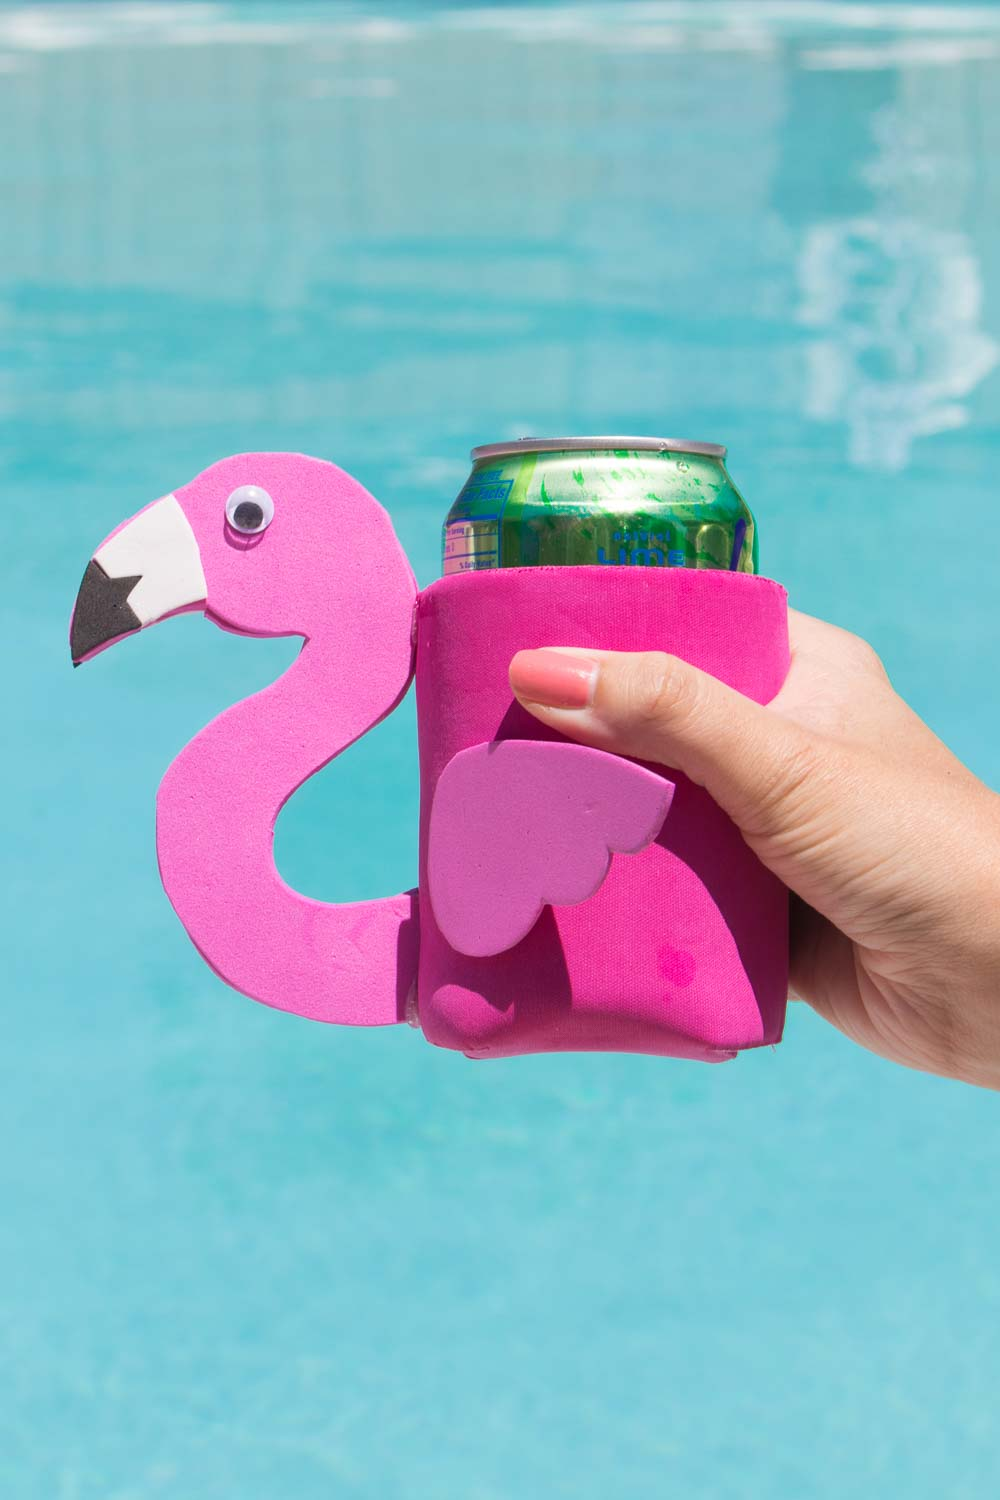 DIY Flamingo Can Cooler + Free Template! - Club Crafted